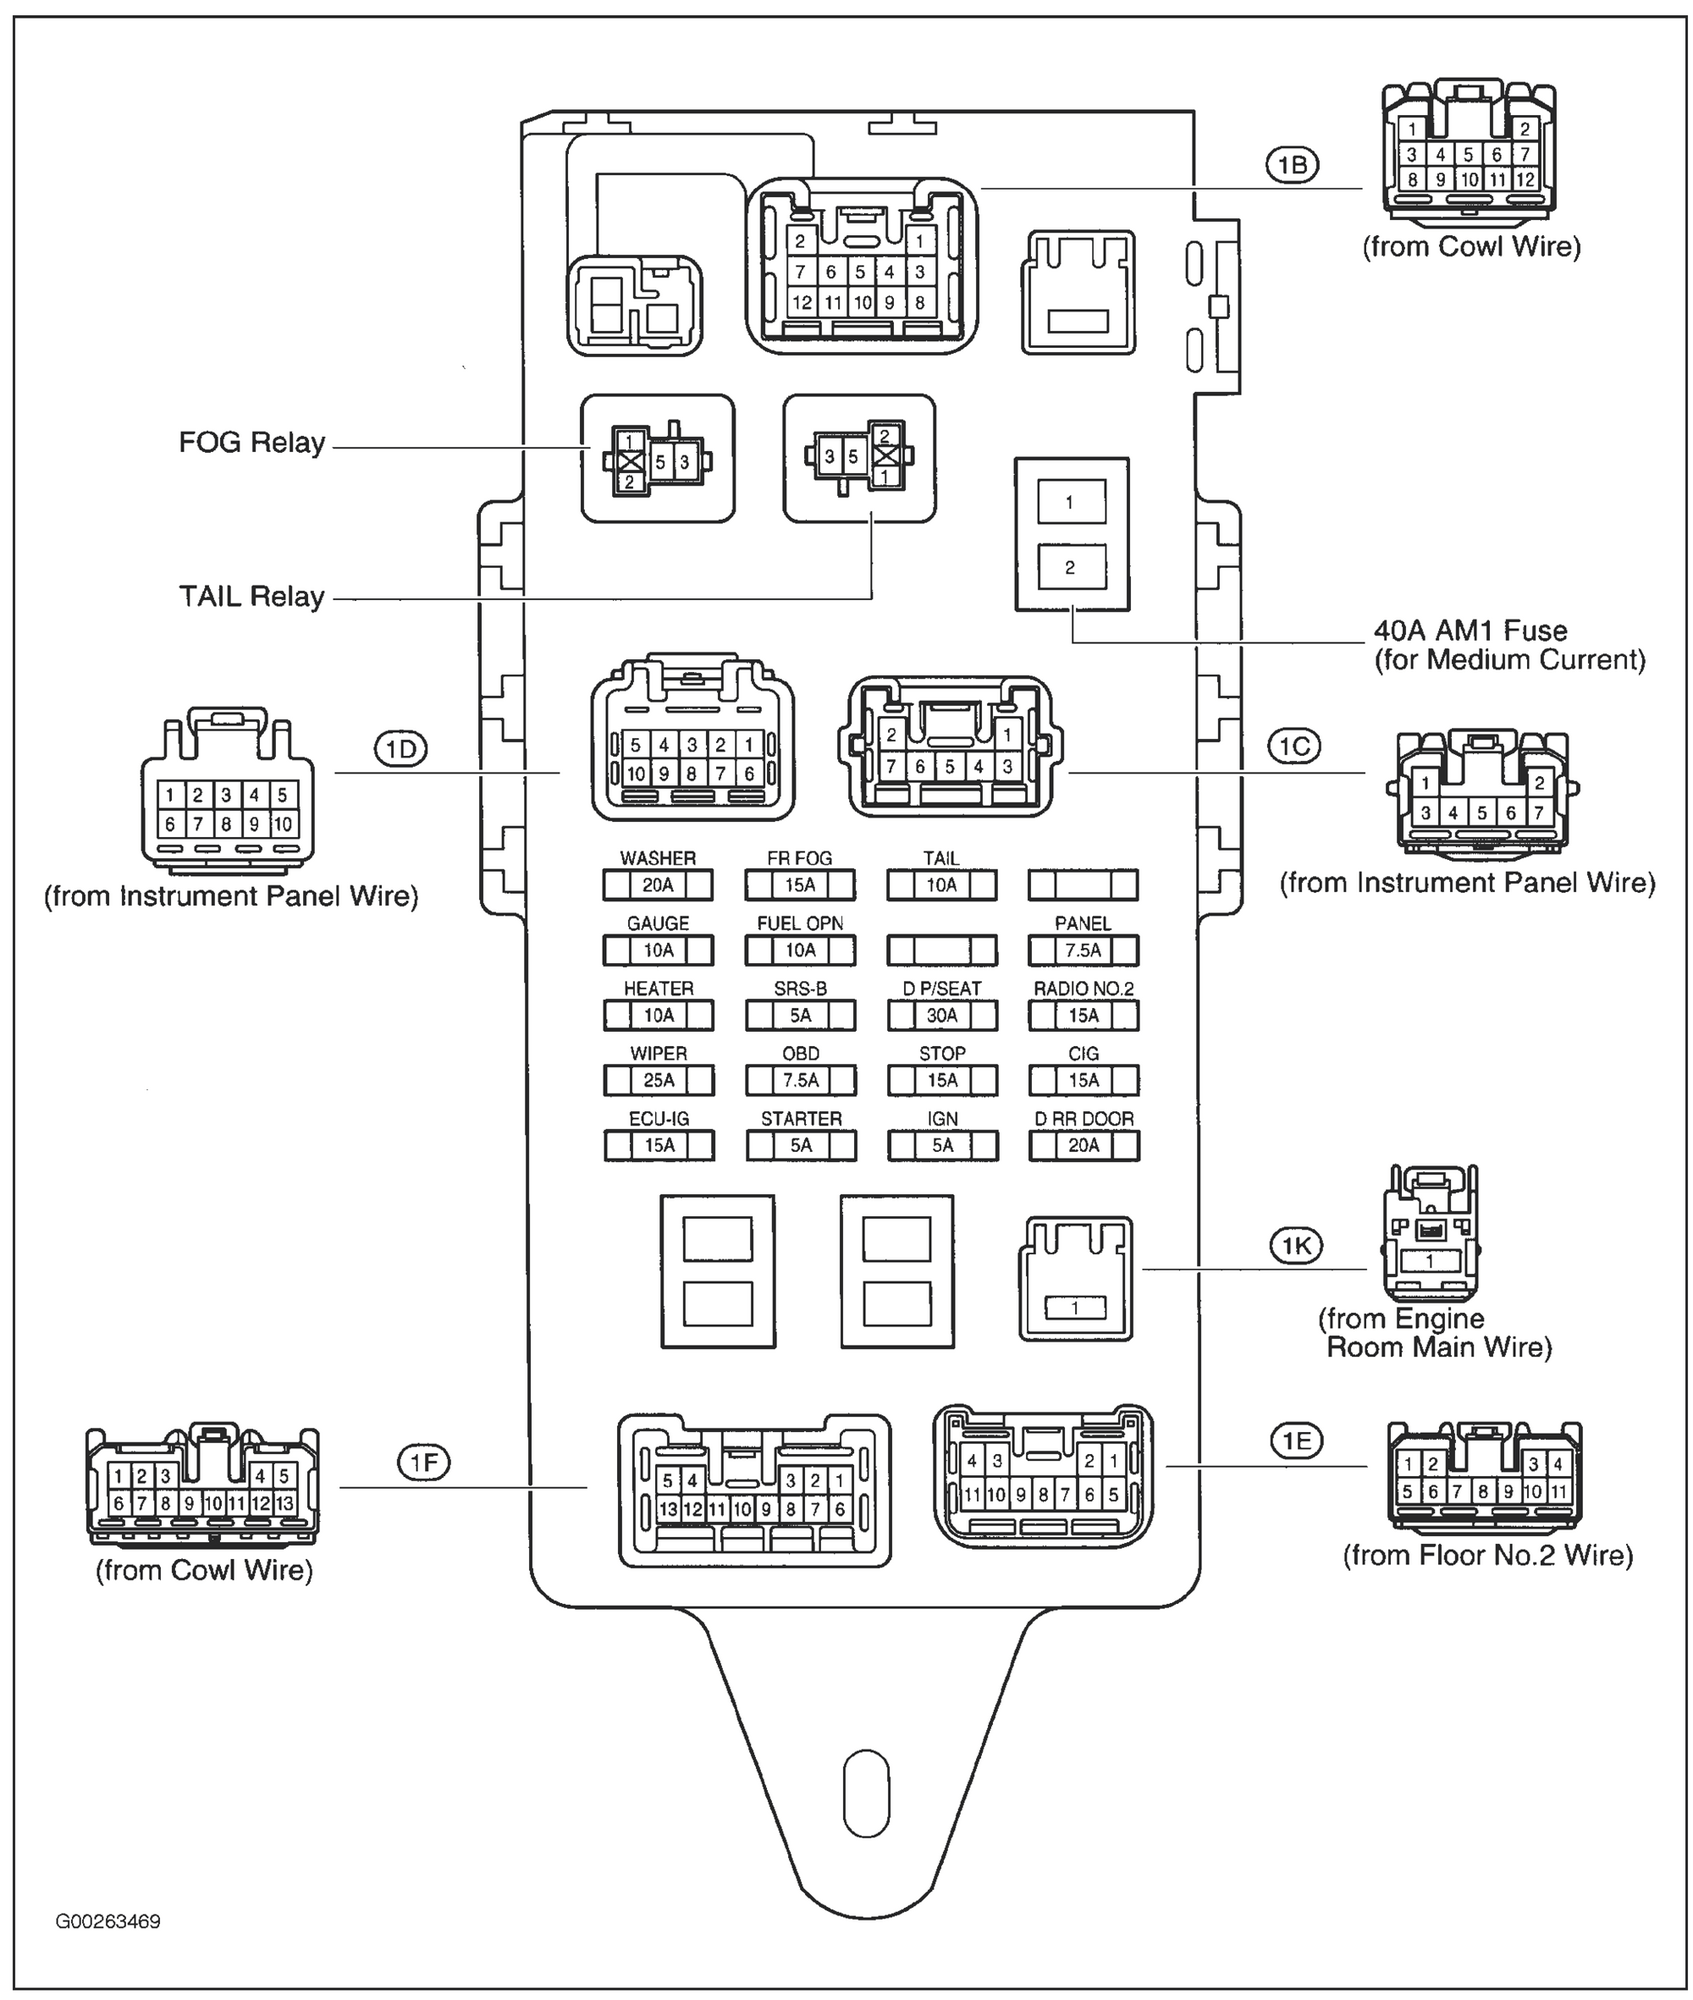 hight resolution of lexus sc300 fuse box location expert schematics diagram rh atcobennettrecoveries com ford e 250 fuse